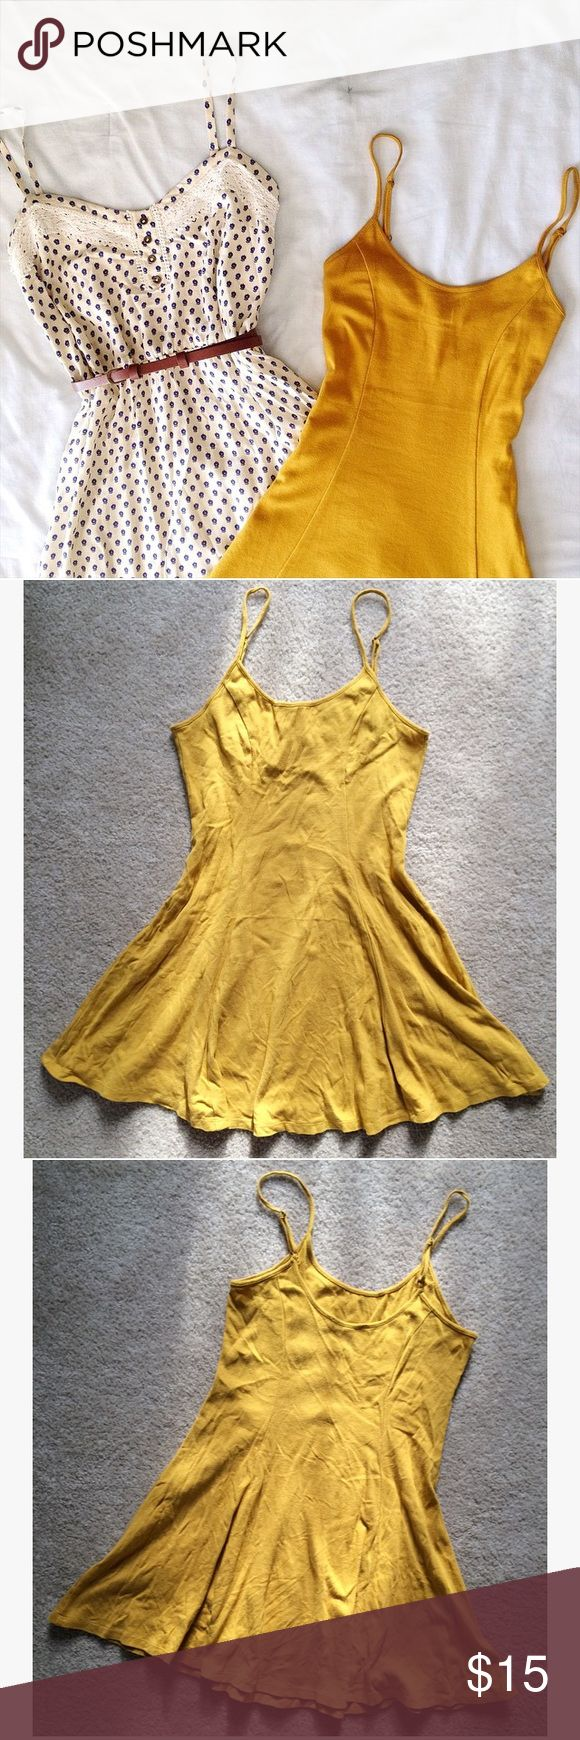 Golden Yellow Cami Dress Cute little cami dress in a golden yellow shade that is so in for spring and summer! Worn once, for an hour, this dress is in nearly new condition! Adjustable spaghetti straps allow you to customize the fit. Princess seams accentuate your curves. Forever 21 Dresses Mini